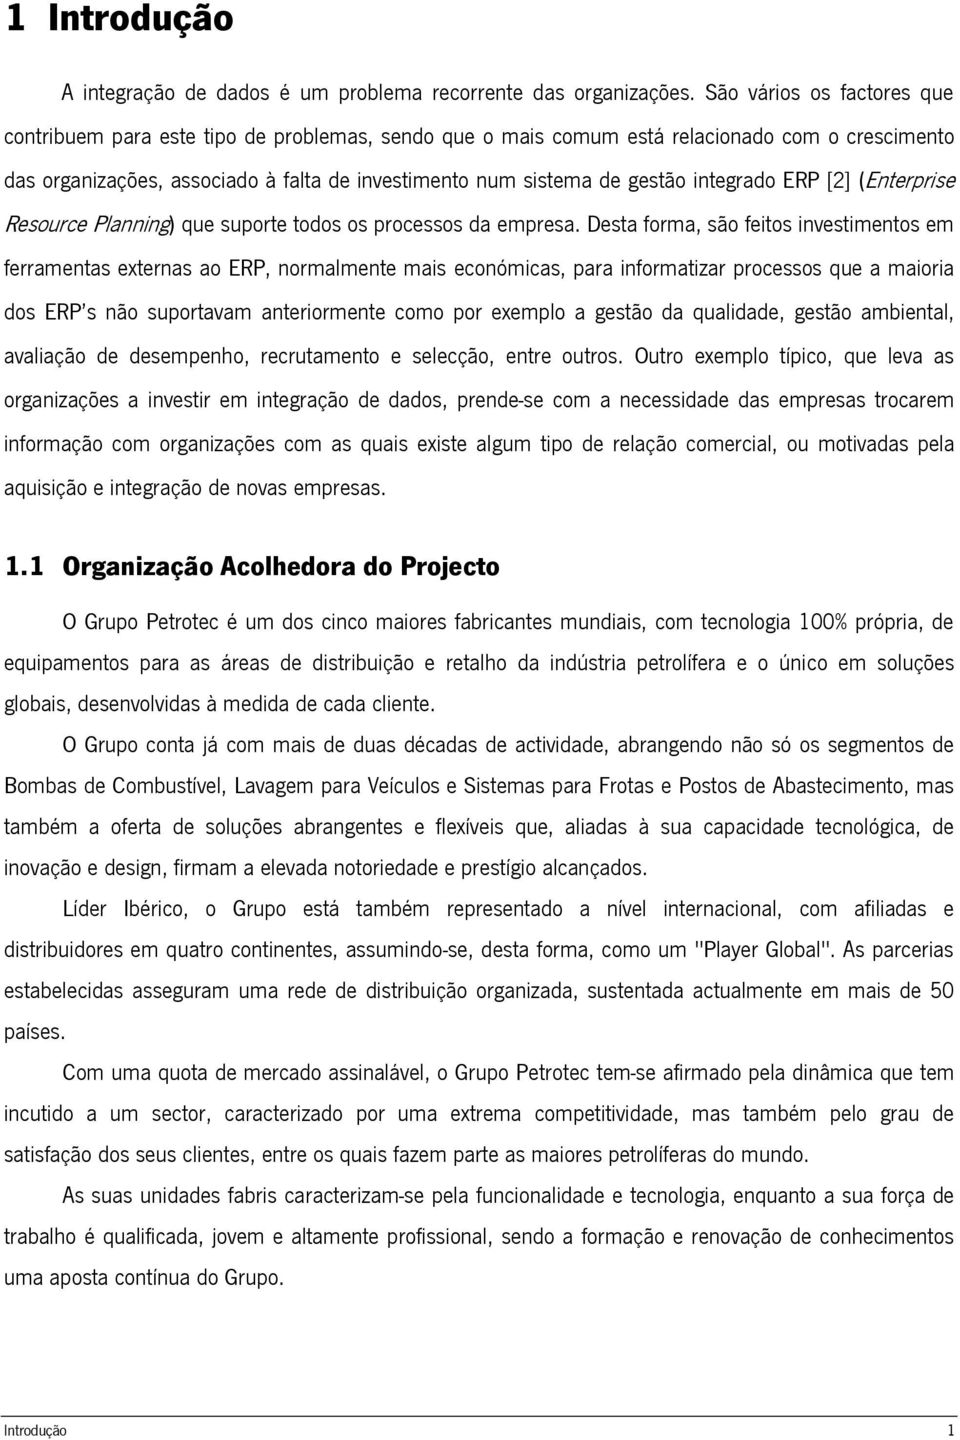 integrado ERP [2] (Enterprise Resource Planning) que suporte todos os processos da empresa.